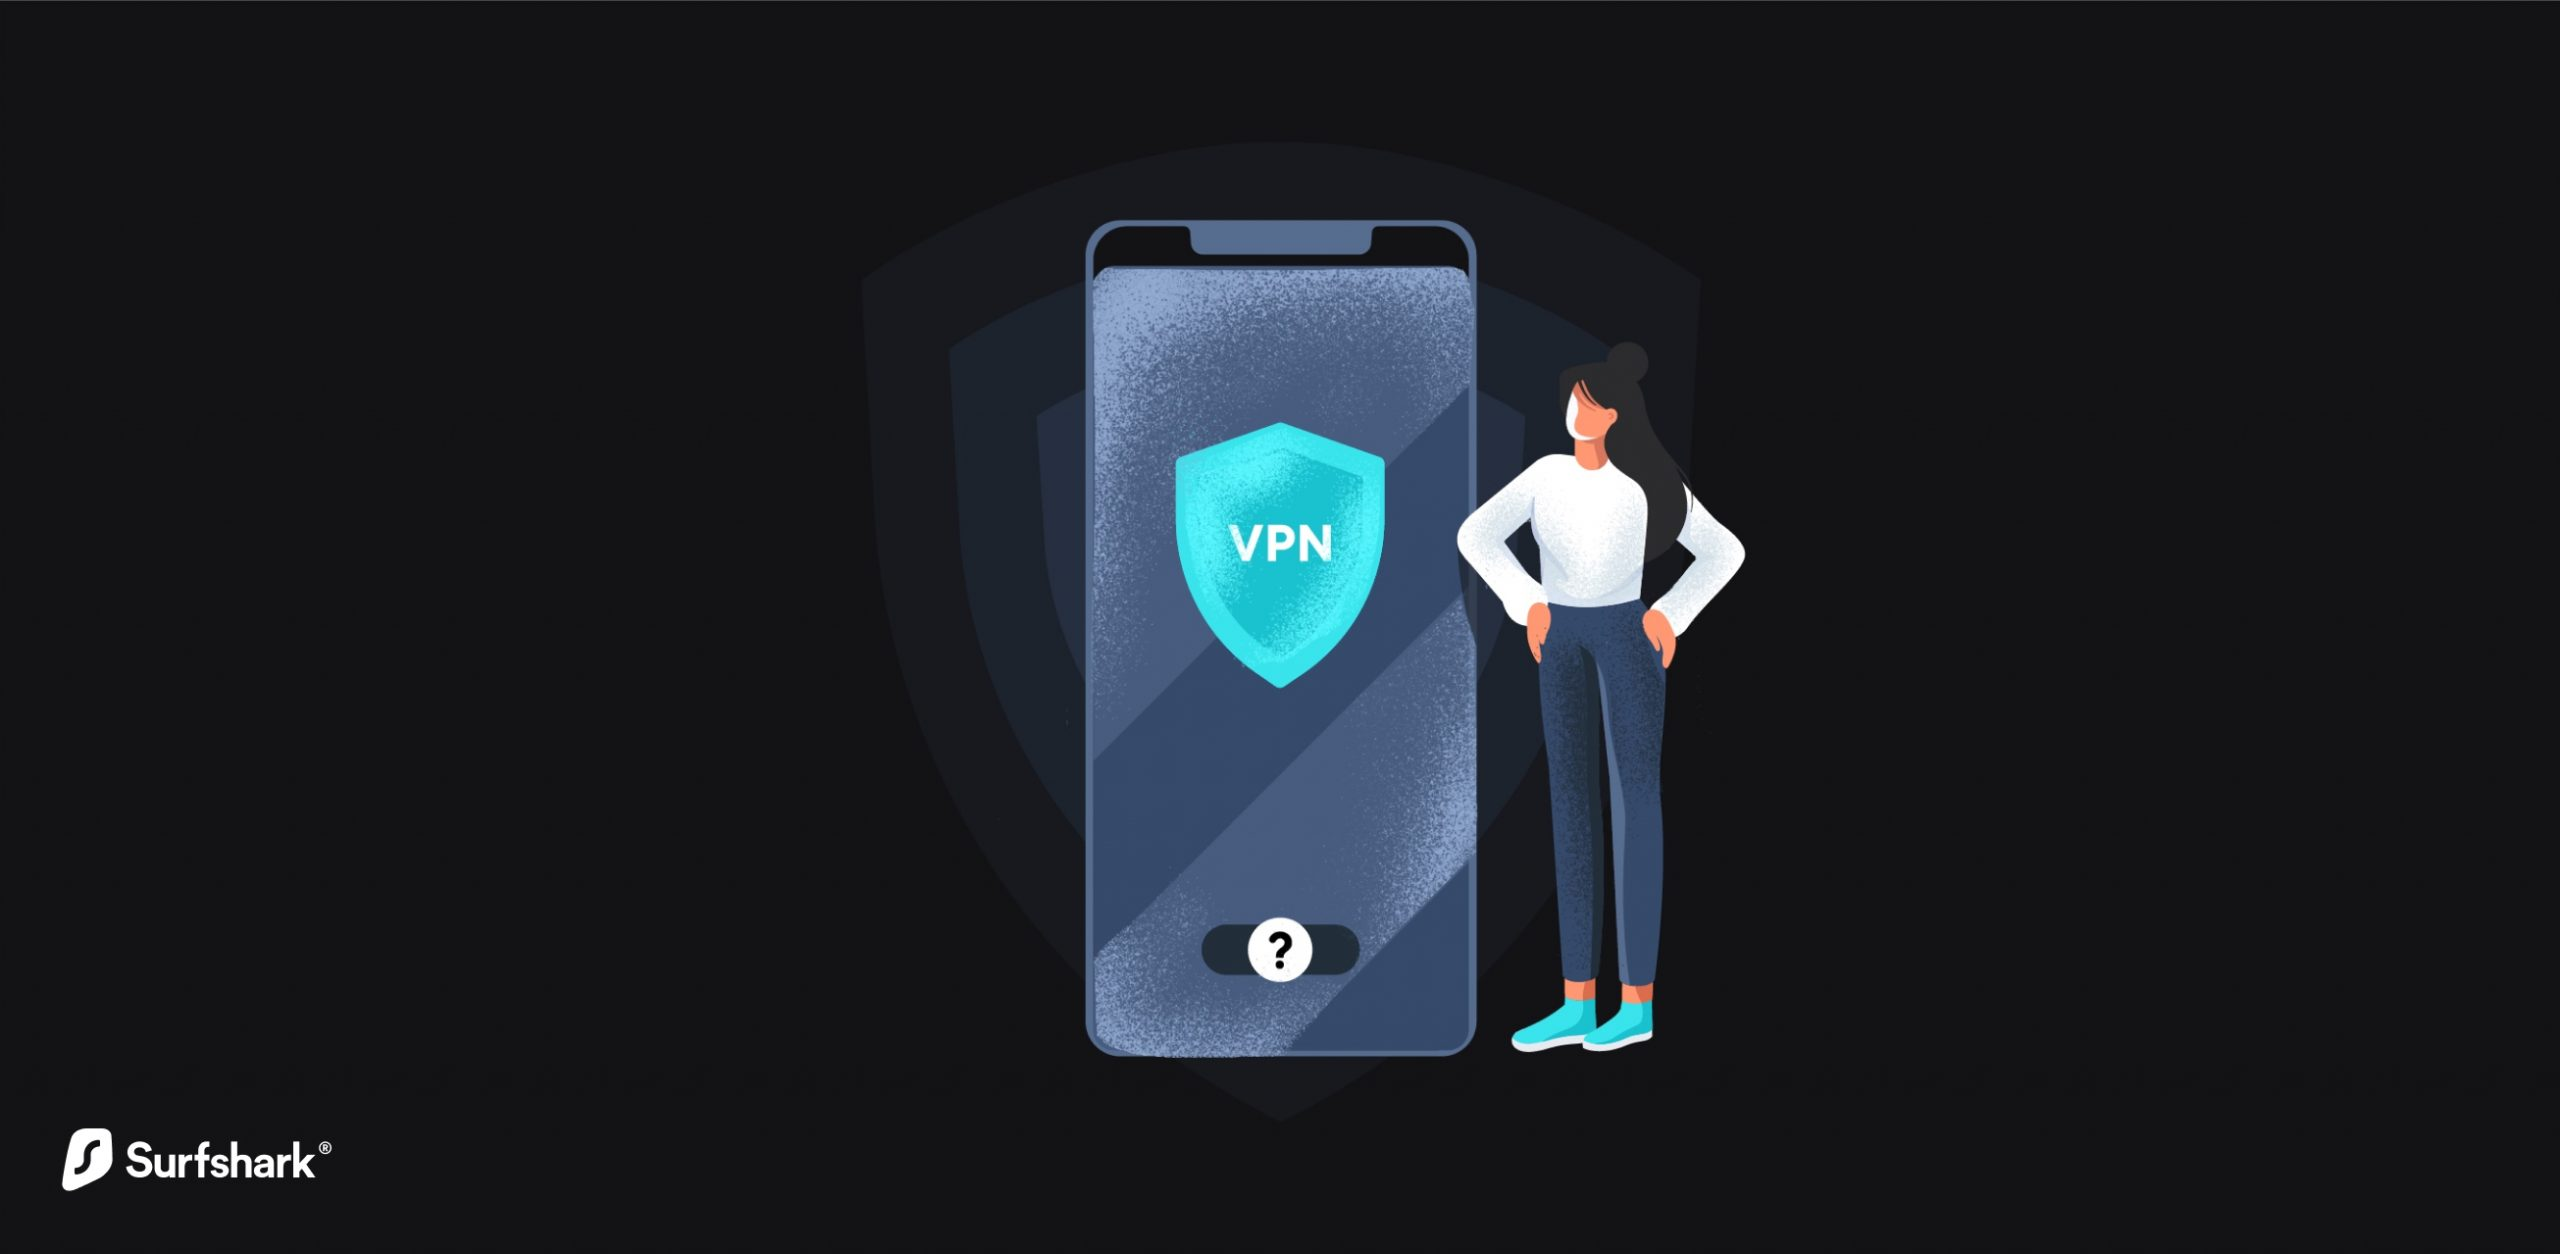 vpn working@2x scaled - How To Check If Vpn Is Active